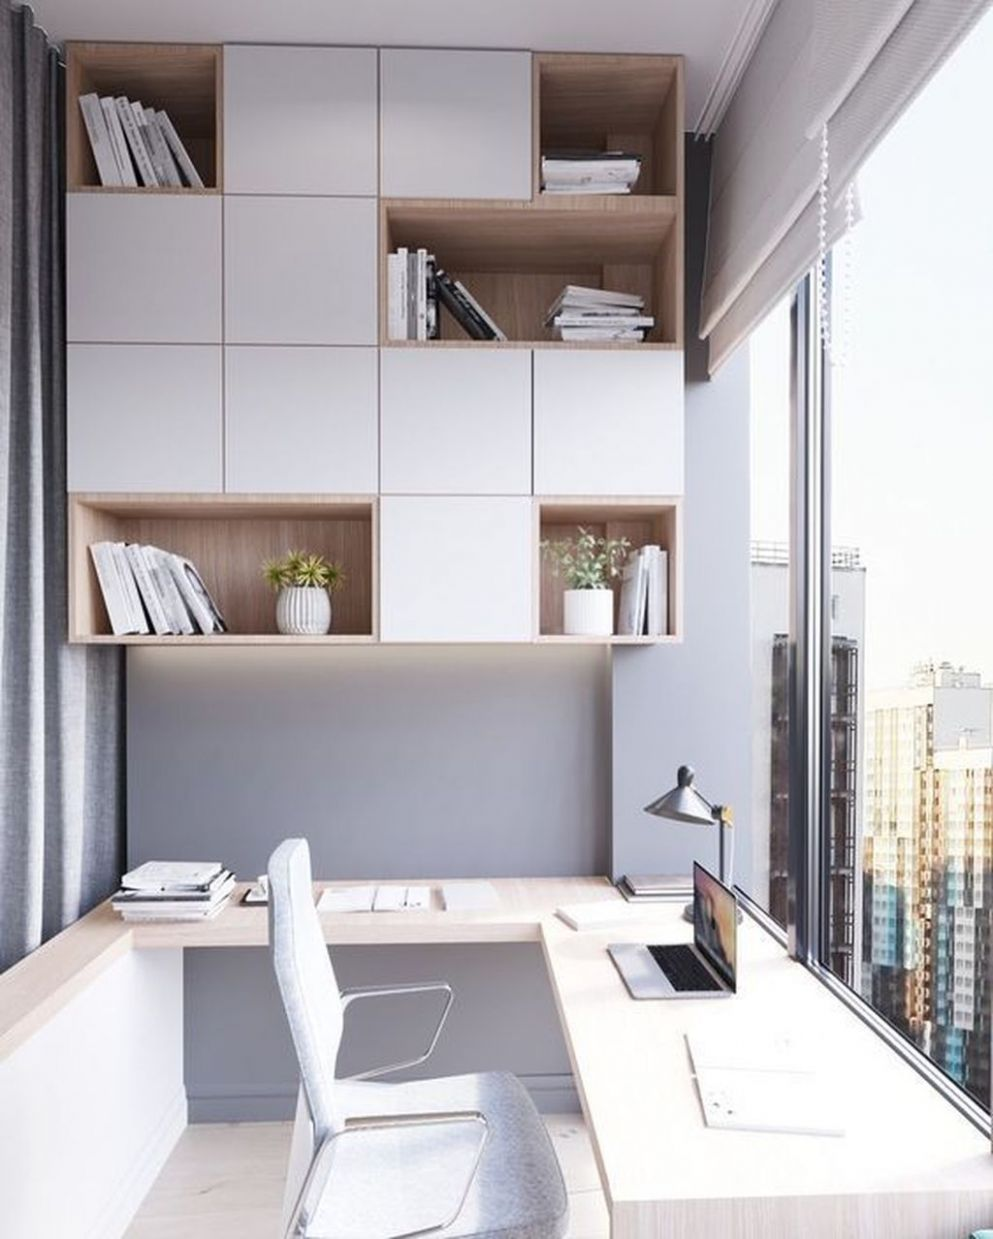 9 The Best Modern Home Office Design Ideas | Home office decor ...